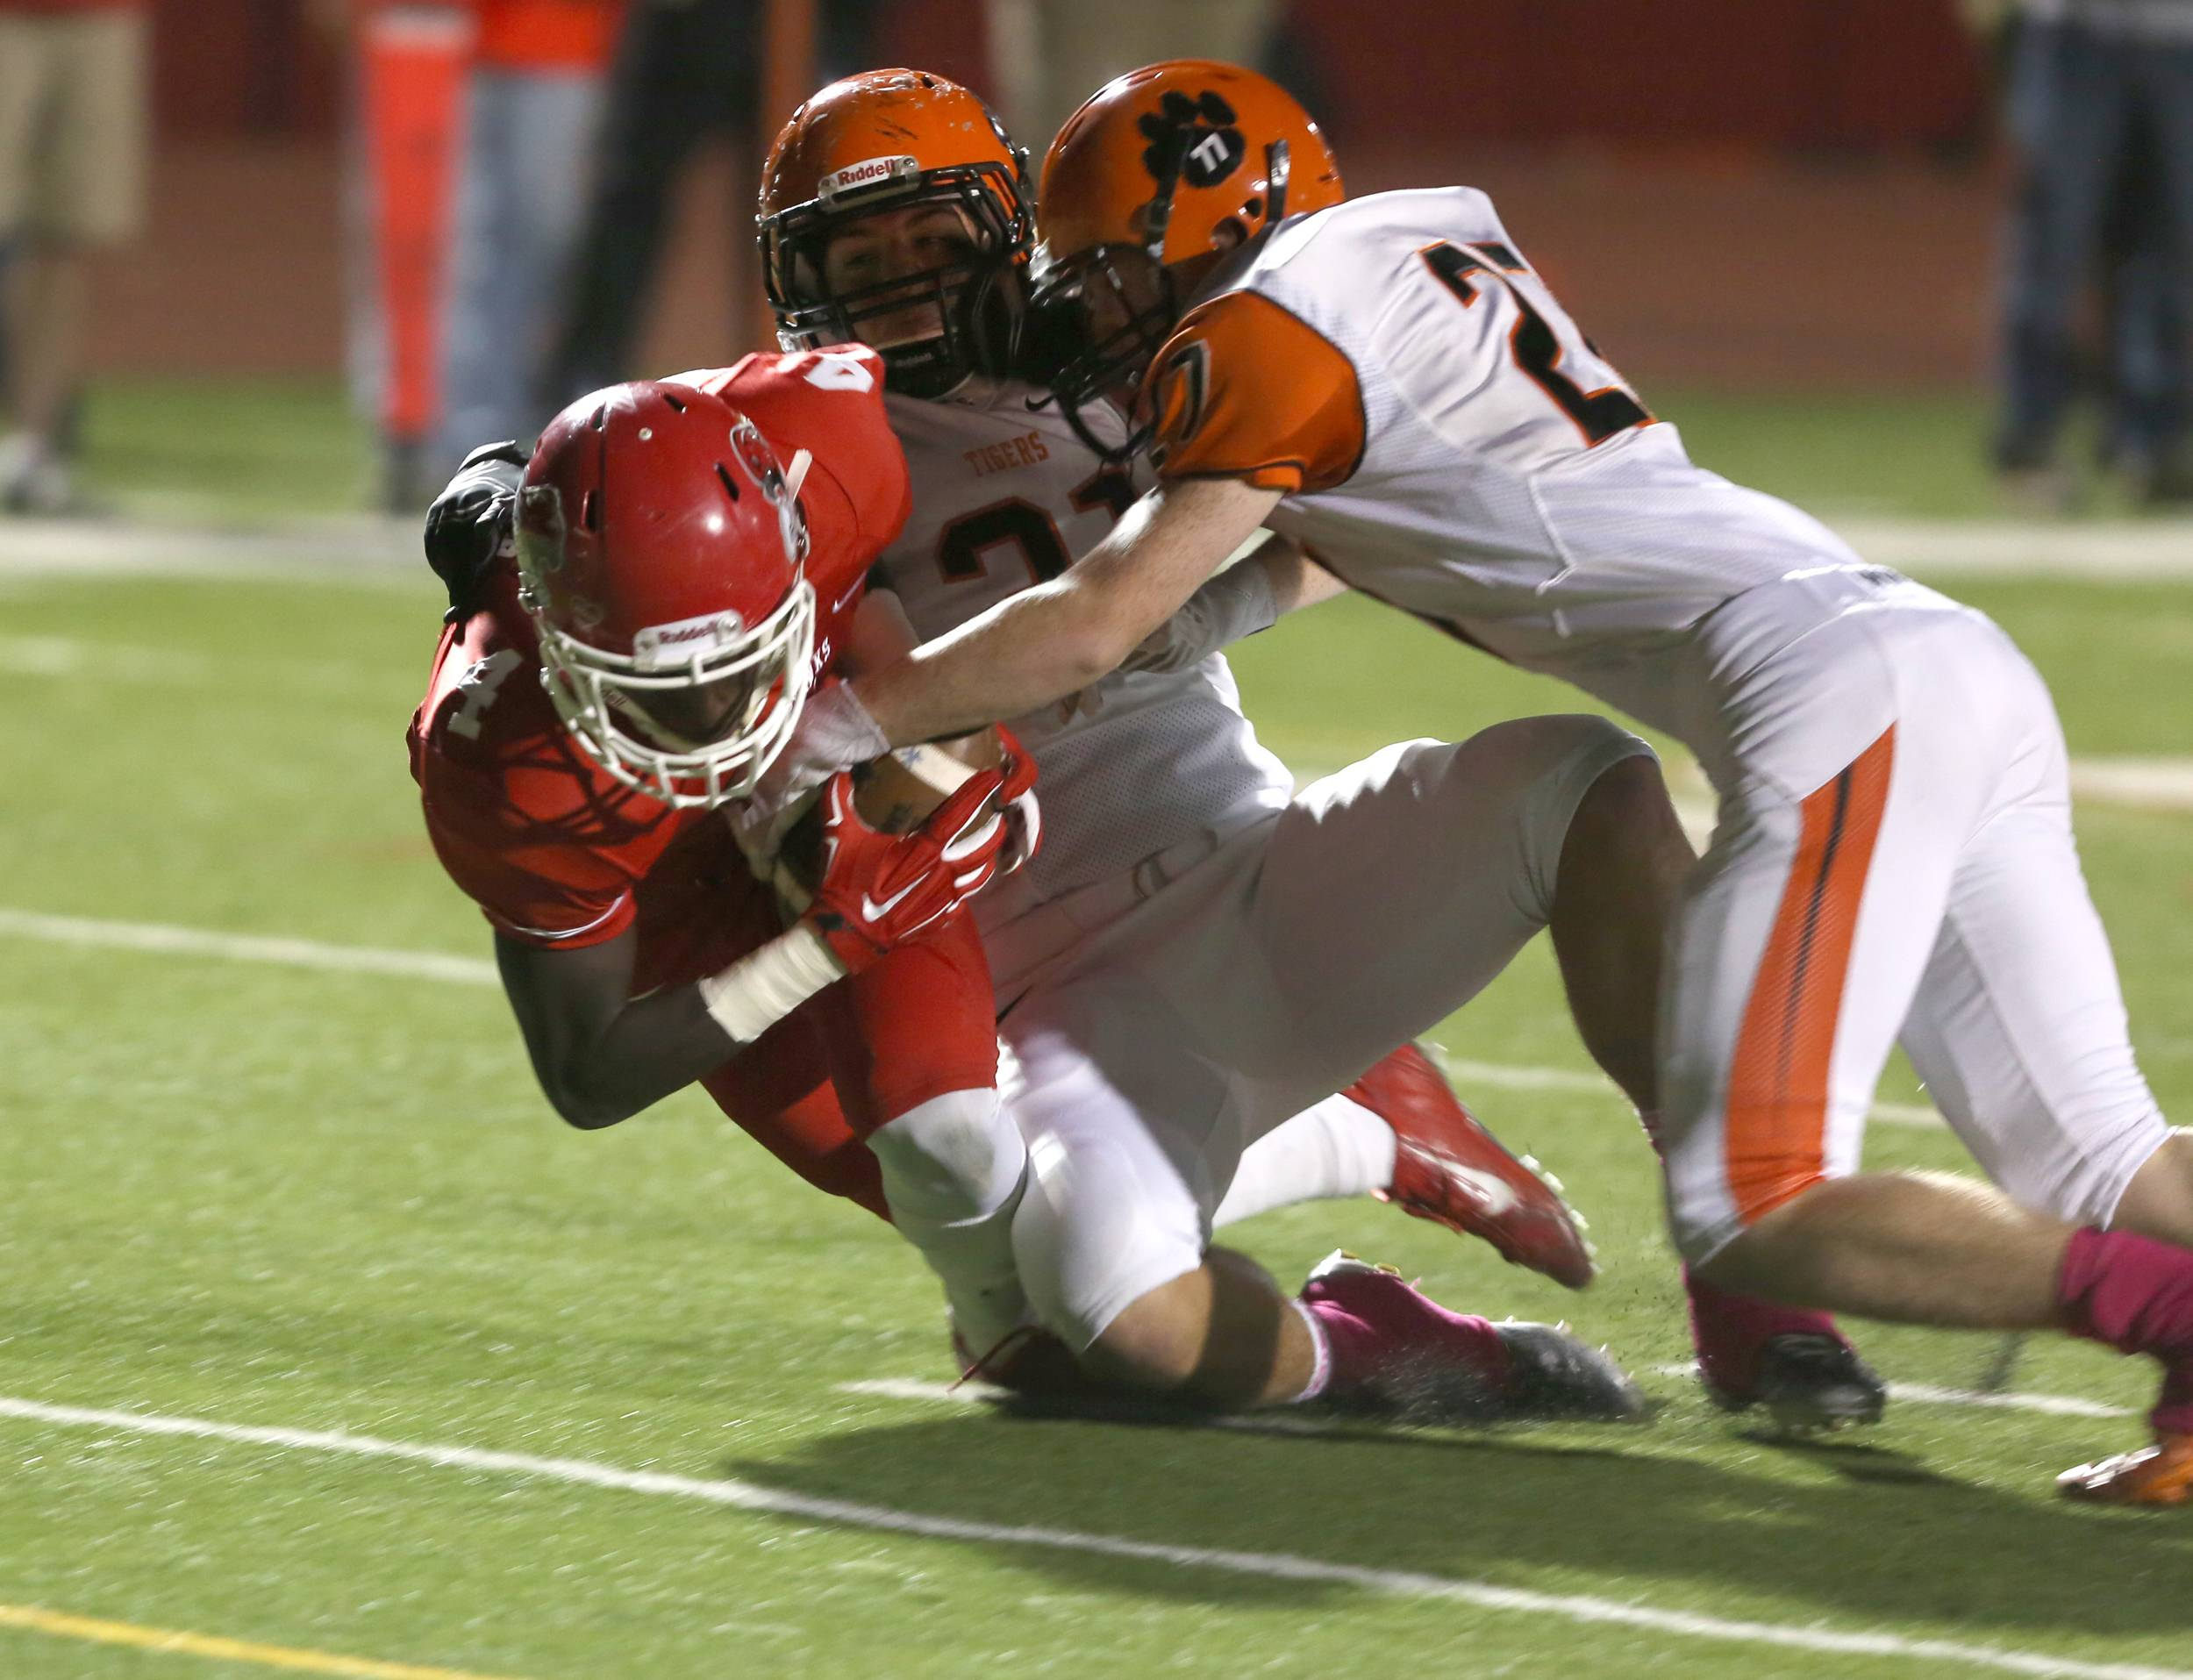 Naperville Central's Emmanuel Rugamba, left, scores a first-quarter touchdown against Wheaton Warrenville South.